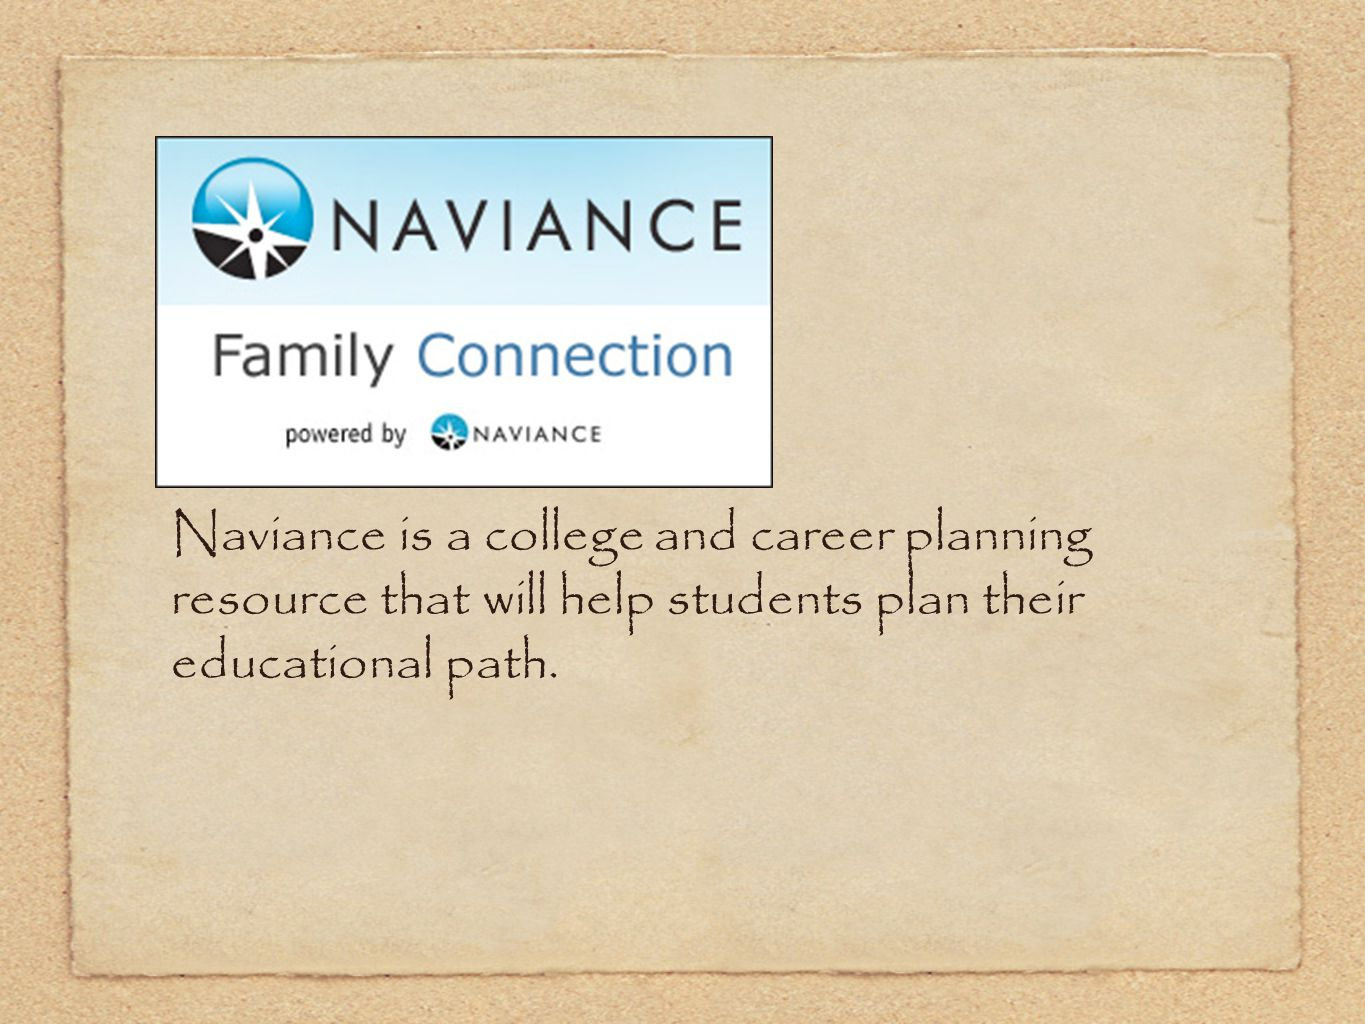 Naviance is a college and career planning resource that will help students plan their educational path.